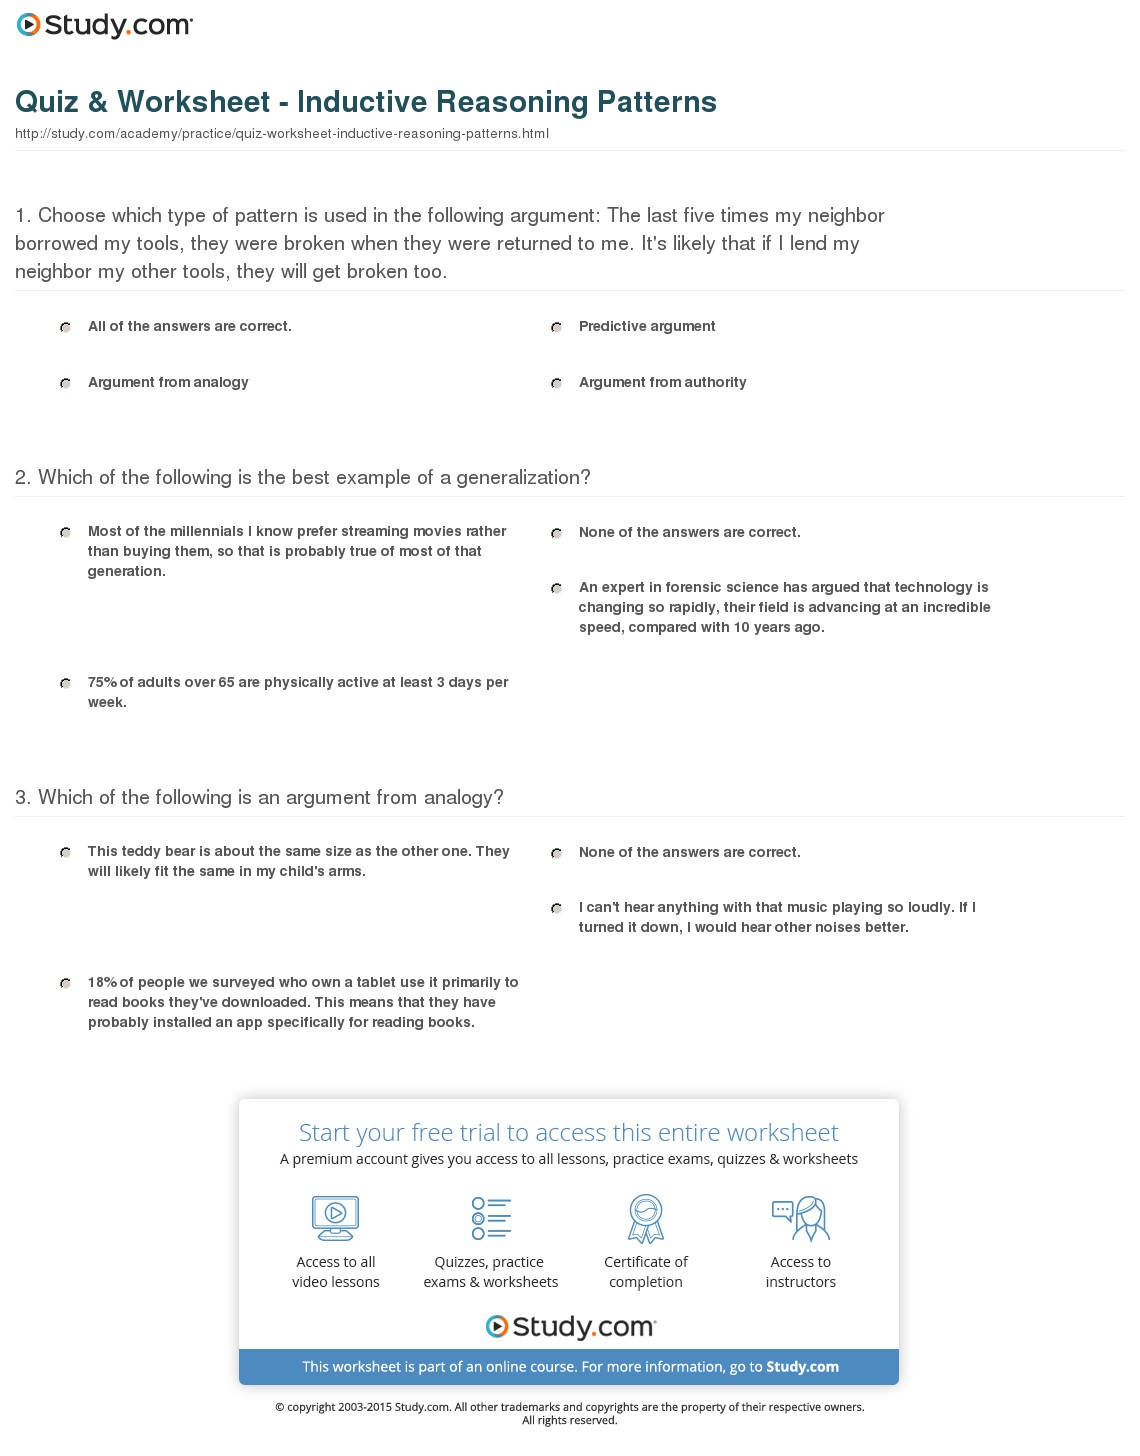 Deductive Reasoning Worksheets For Adults